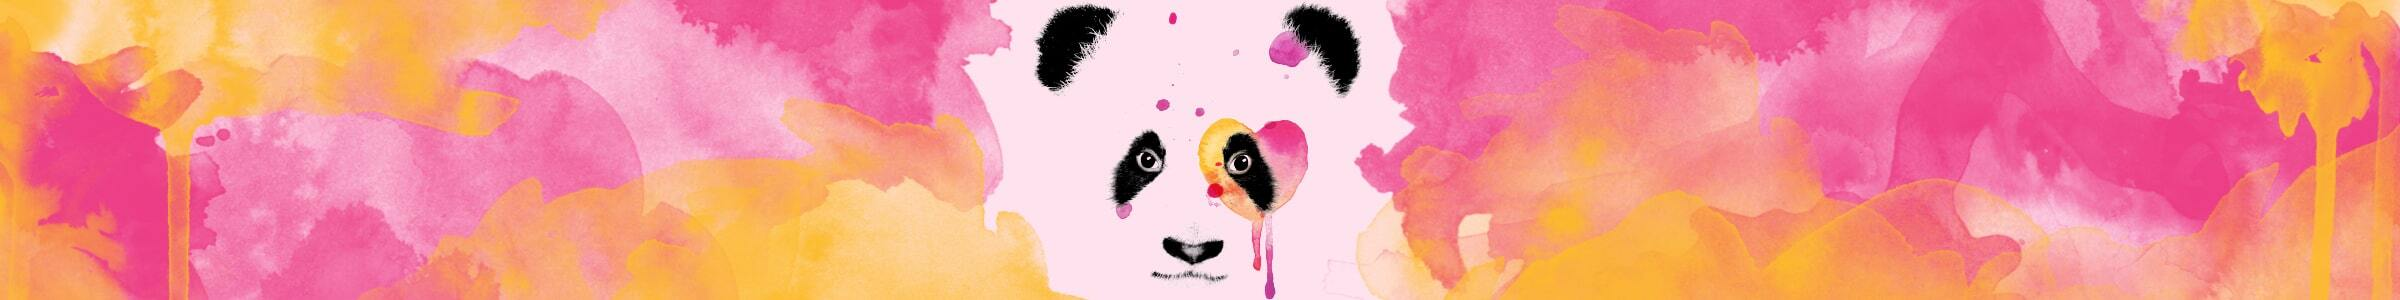 Category_Teaser_Header_Panda_2_2400x300